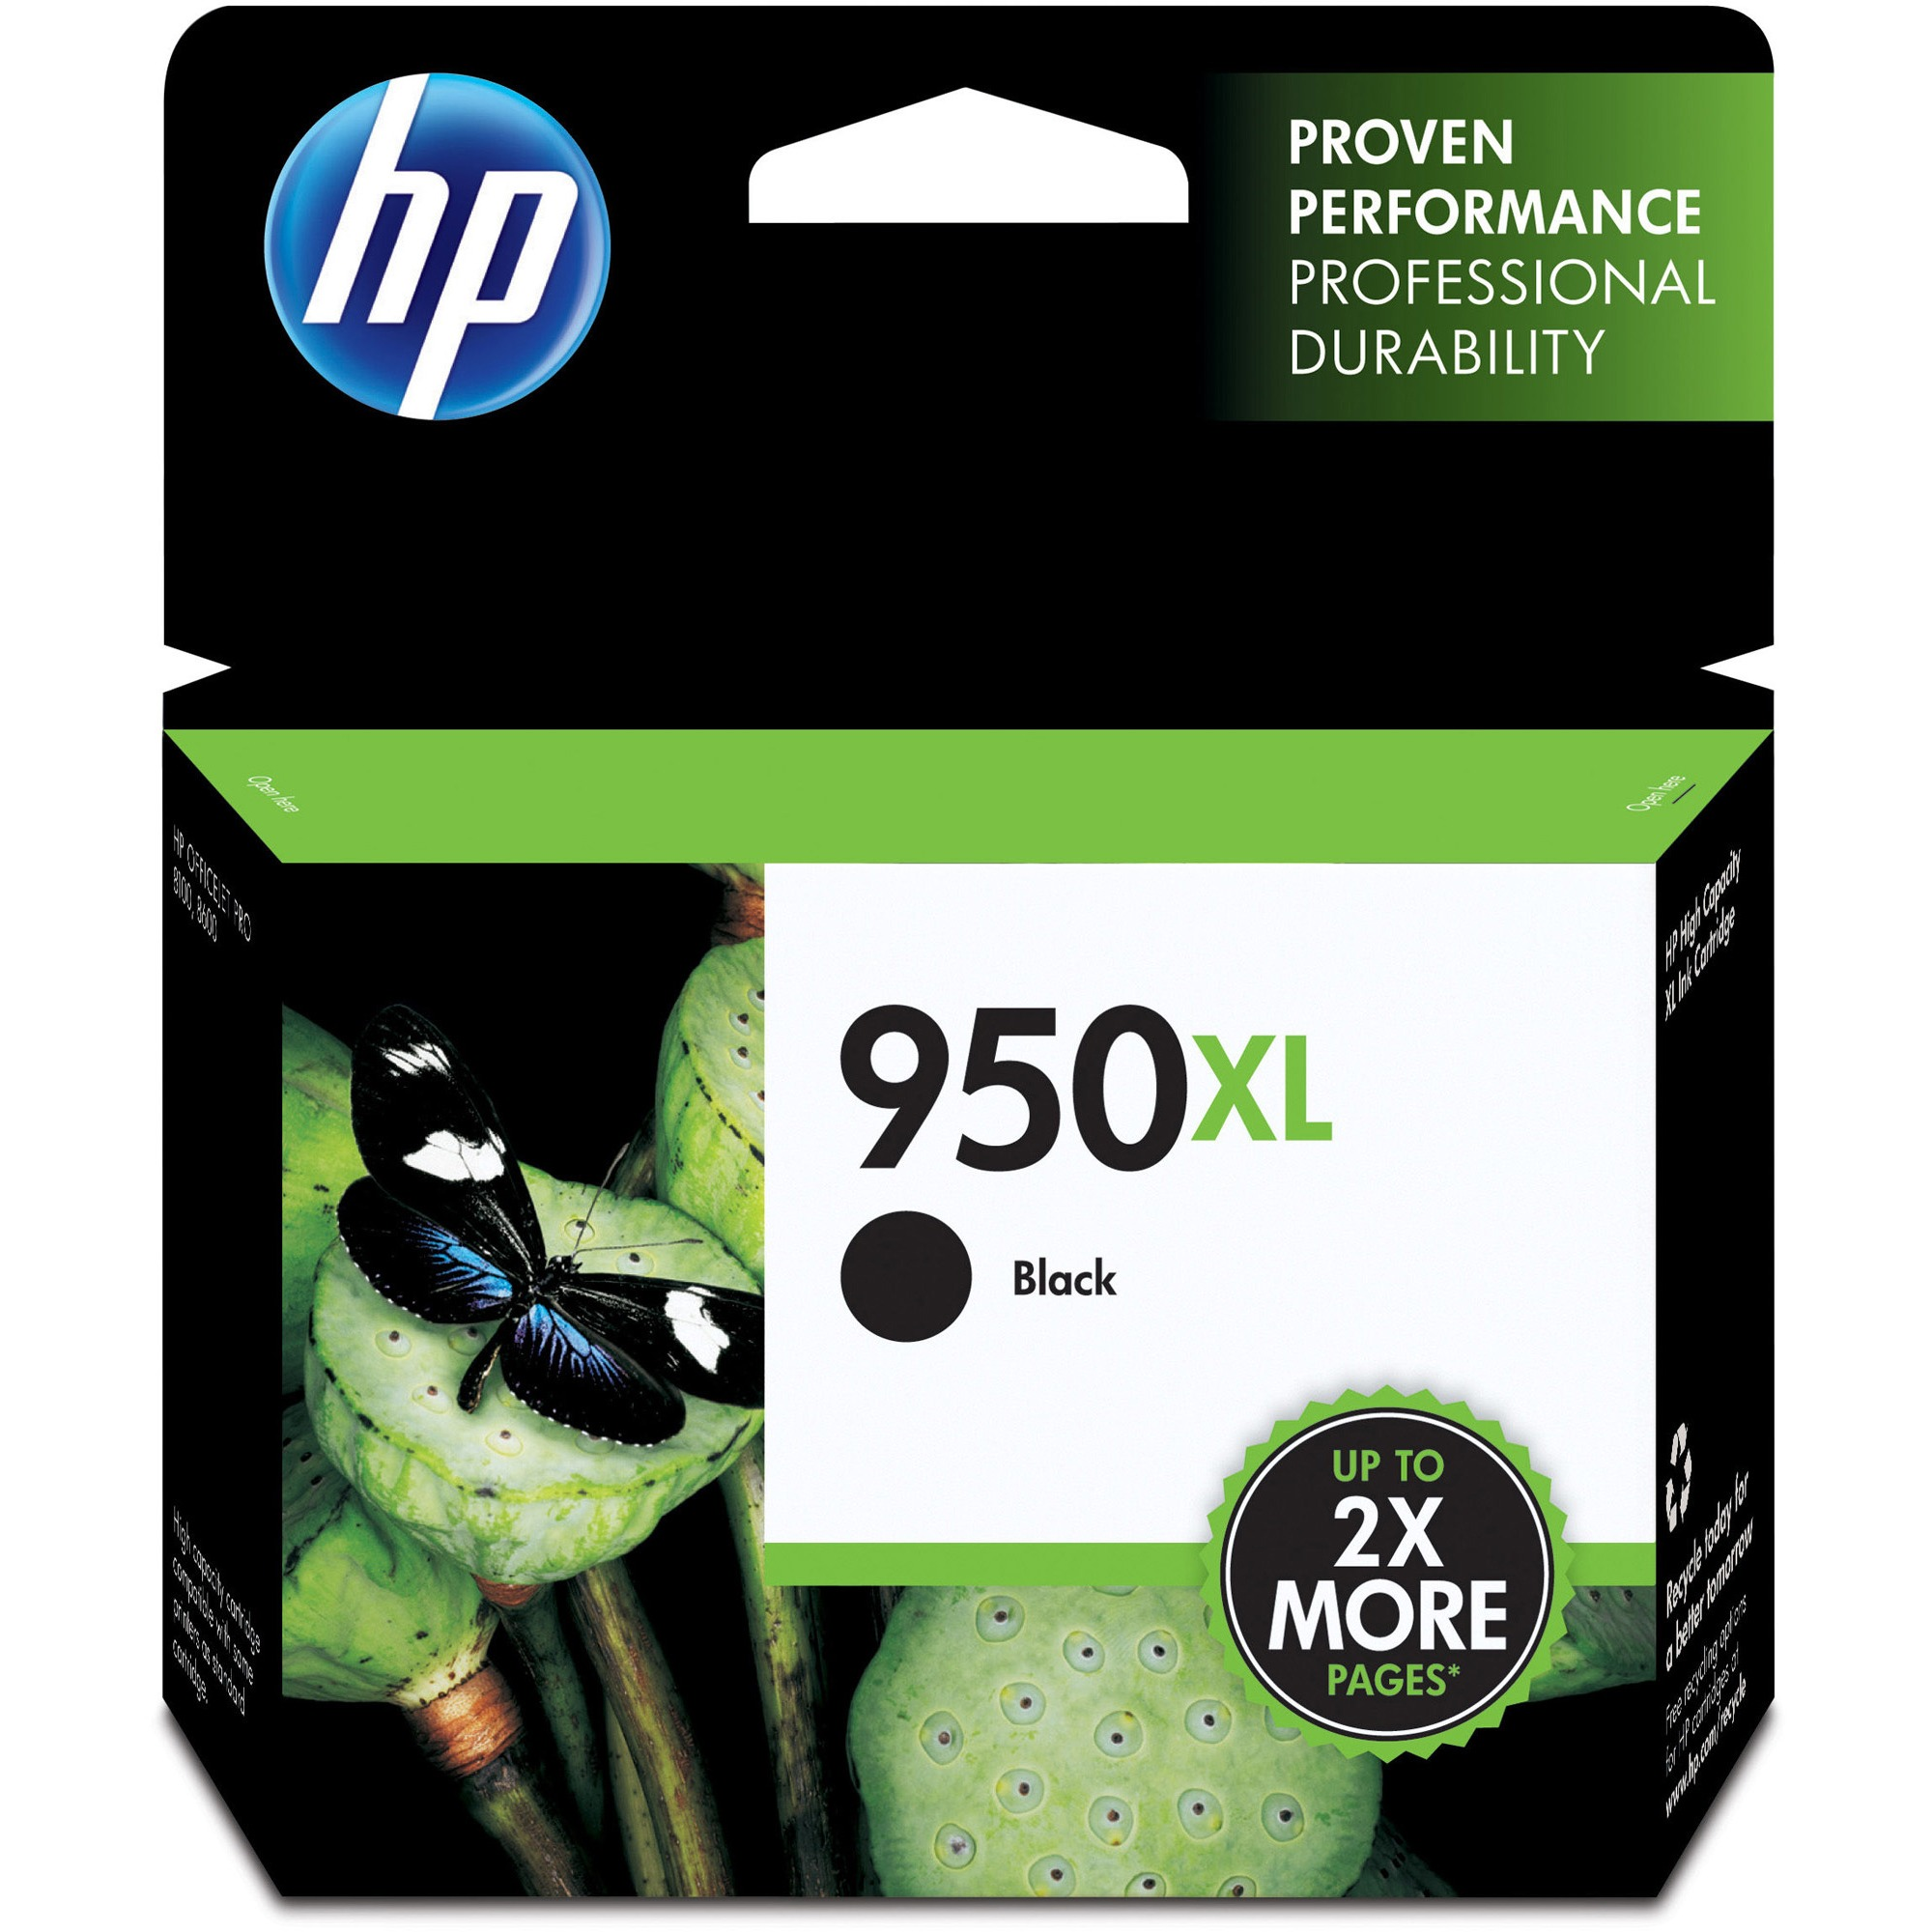 HP 950XL Black High-Yield ink cartridge (CN045AN)